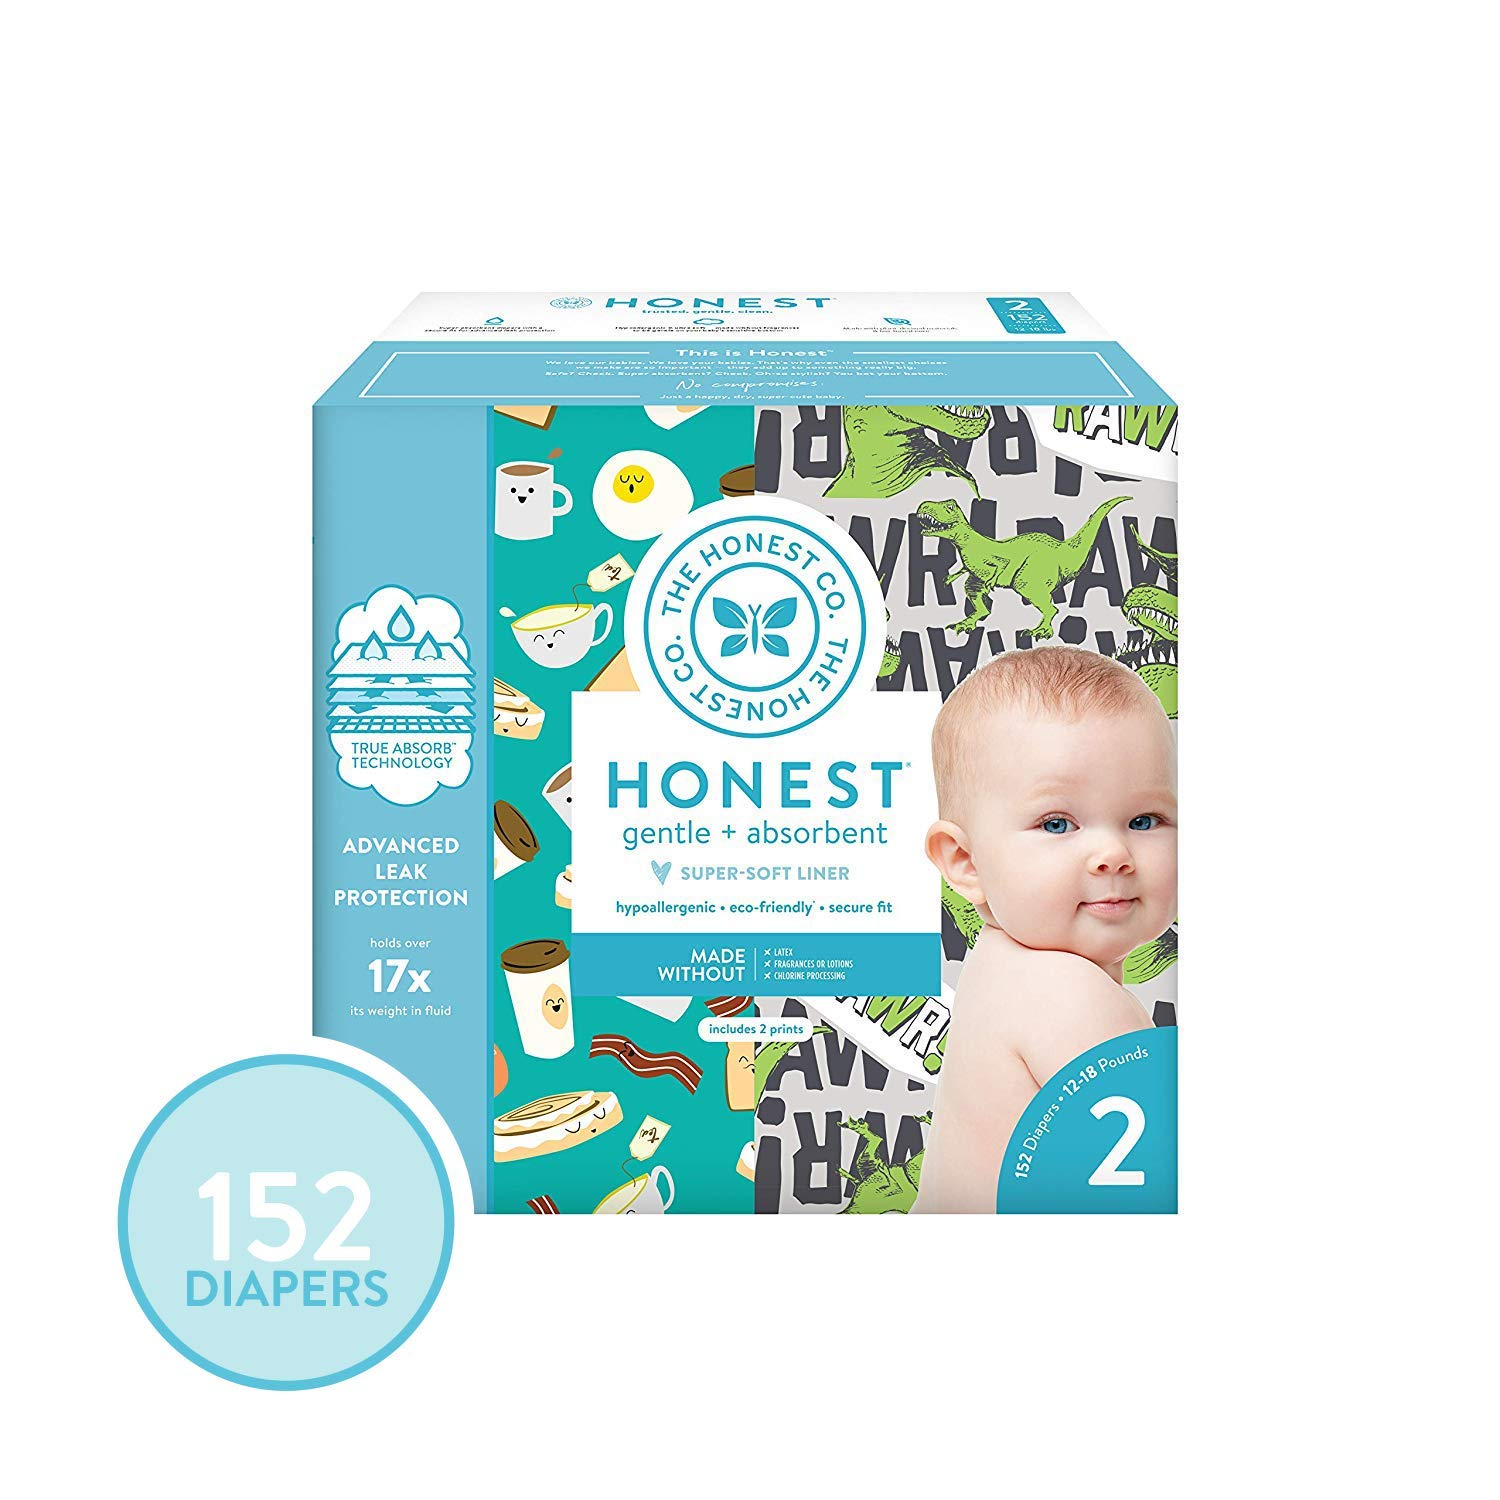 Rose Blossom /& Strawberries 100 Count Size 5 The Honest Company Super Club Box Diapers with TrueAbsorb Technology